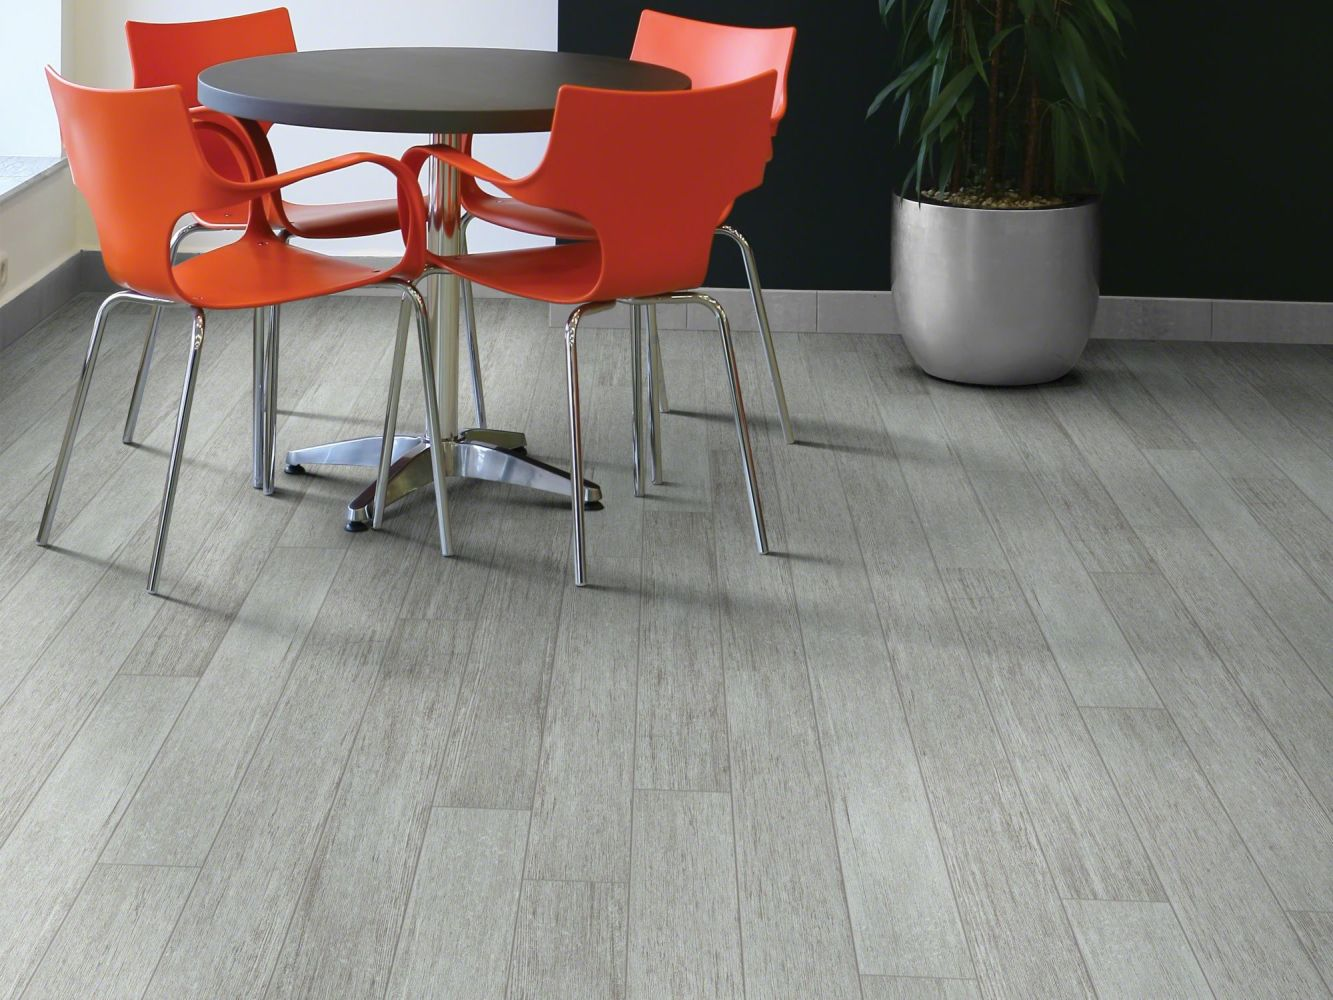 Shaw Floors Vinyl Residential Uptown Now Wpc+ Hamilton Ave 00559_0999V